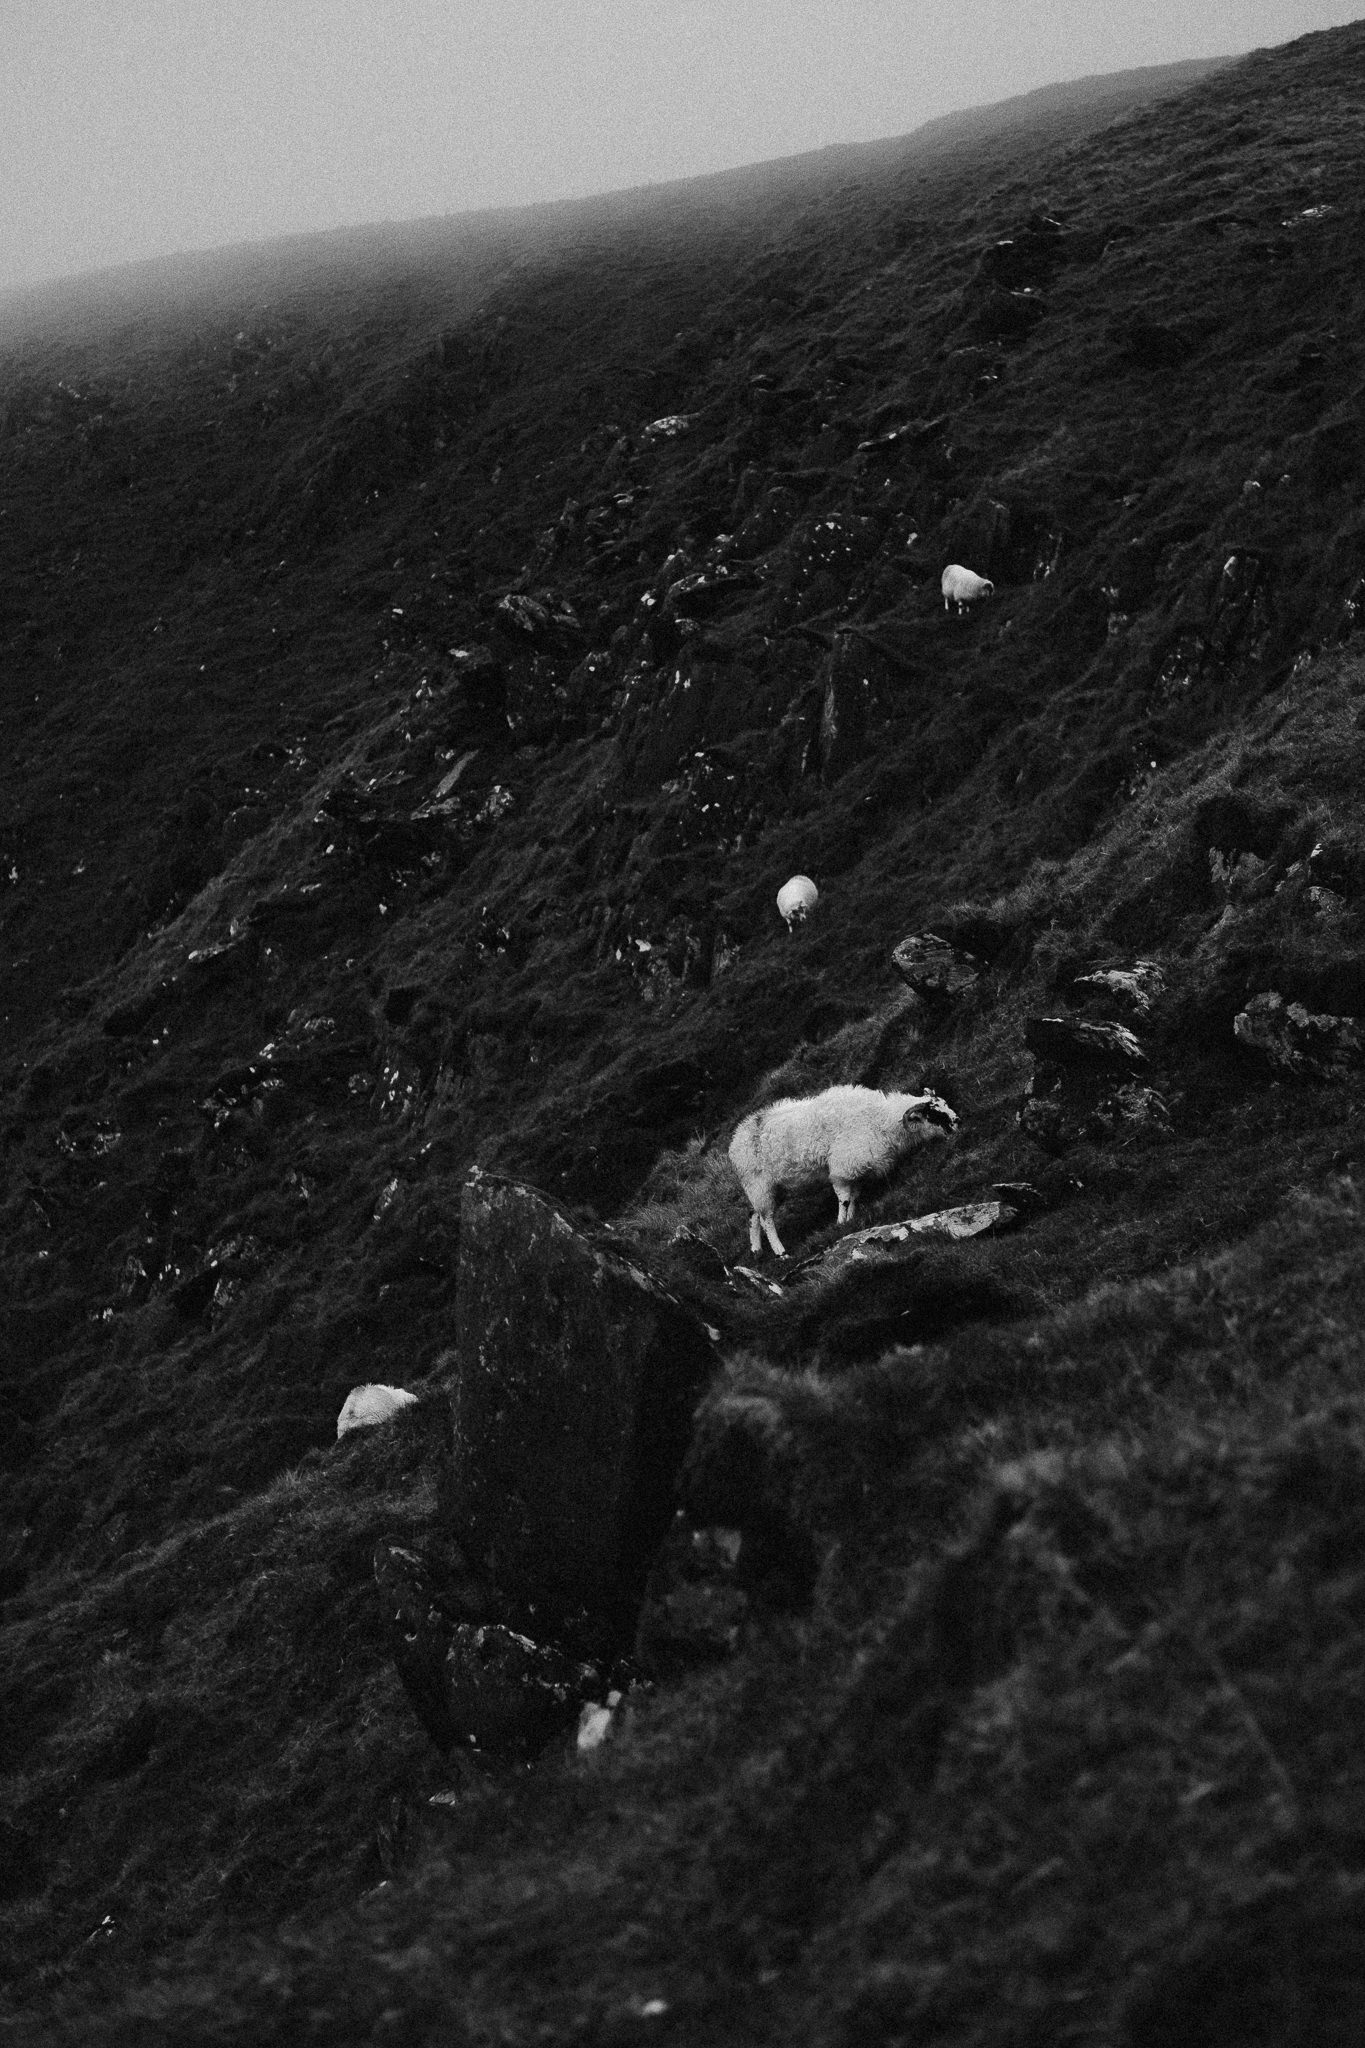 Black and white photo of sheep climbing a mountain in Ireland